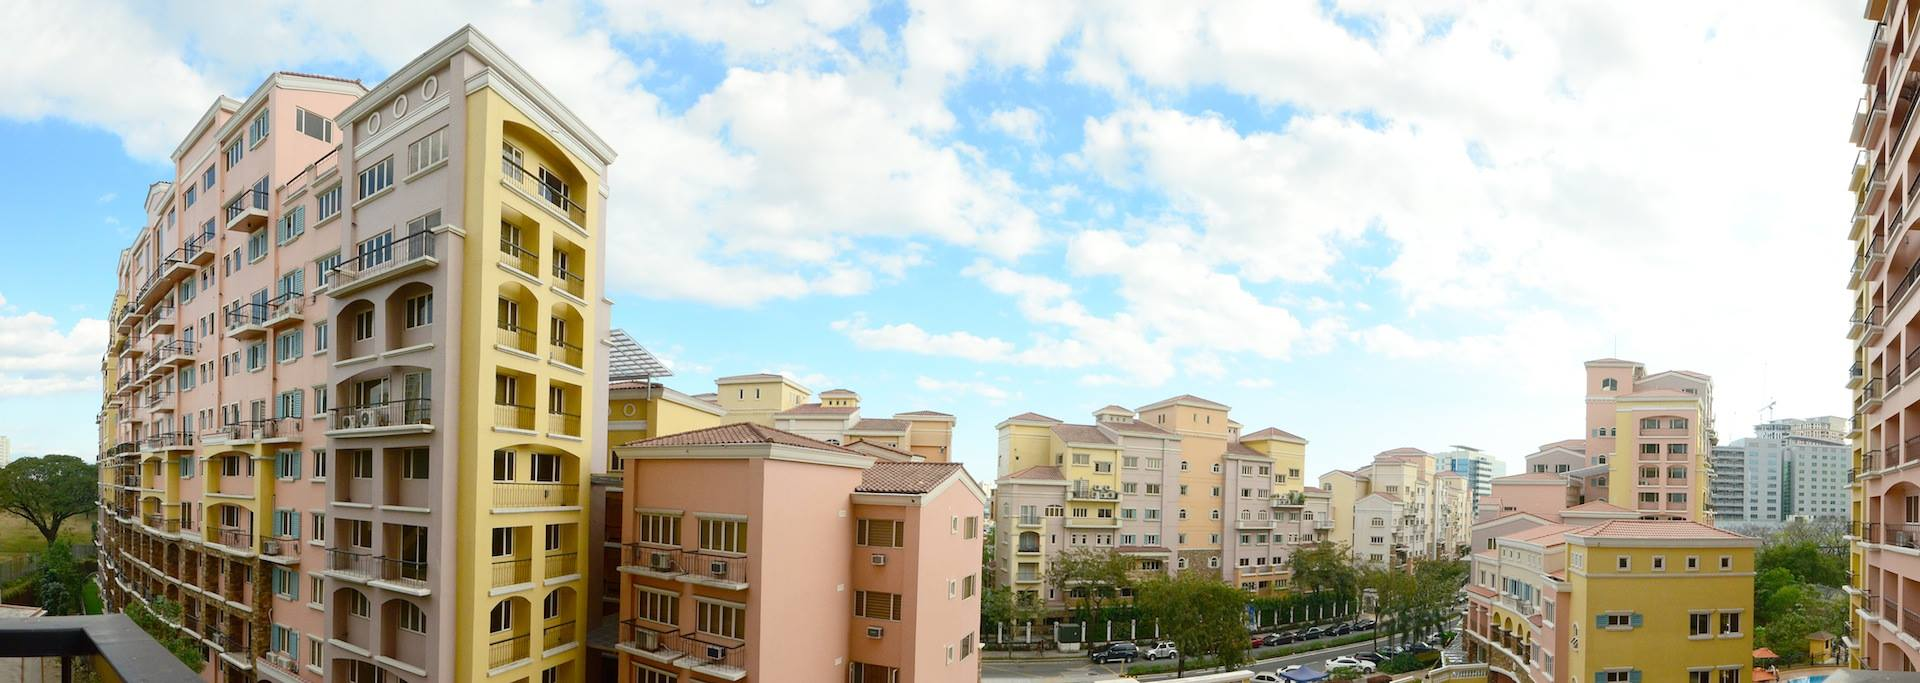 mckinley-hill-tuscany-condos-for-rent-philippines